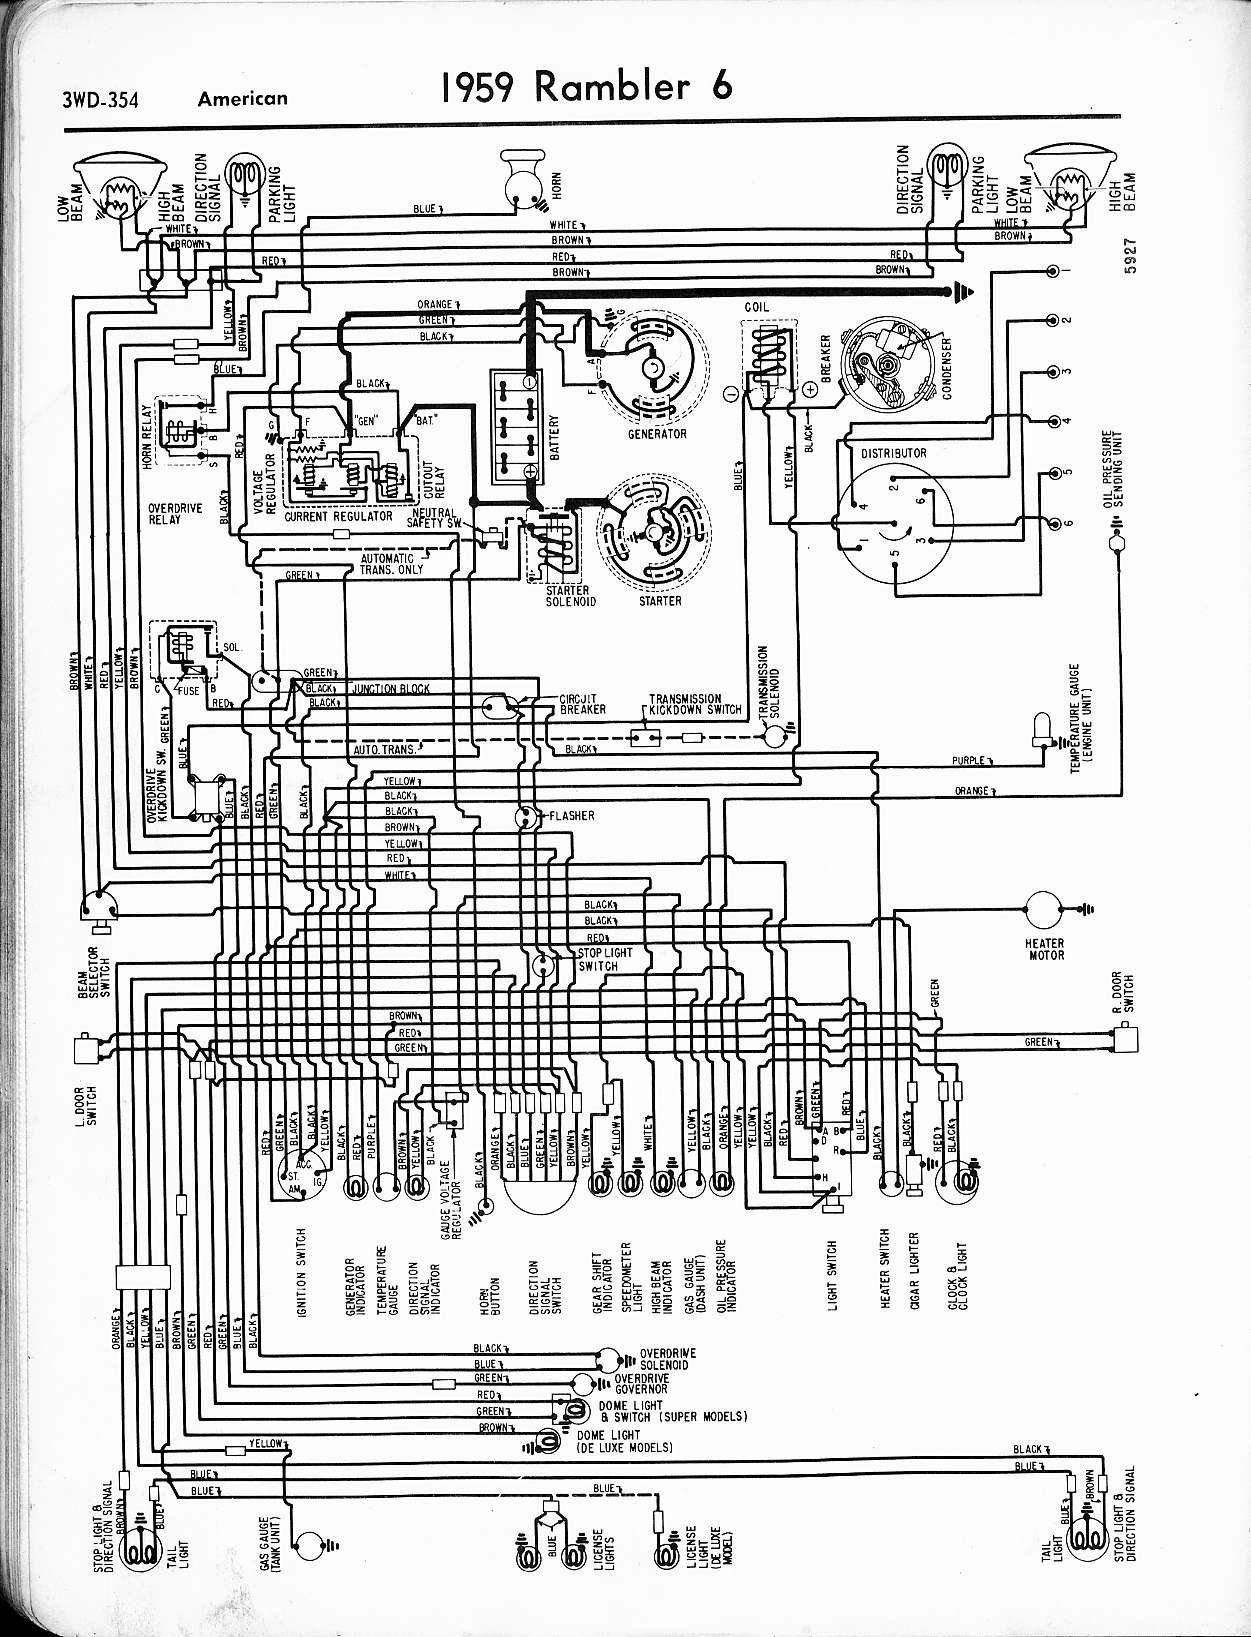 MWire5765 354 rambler wiring diagrams the old car manual project 1964 rambler fuse box diagram at readyjetset.co